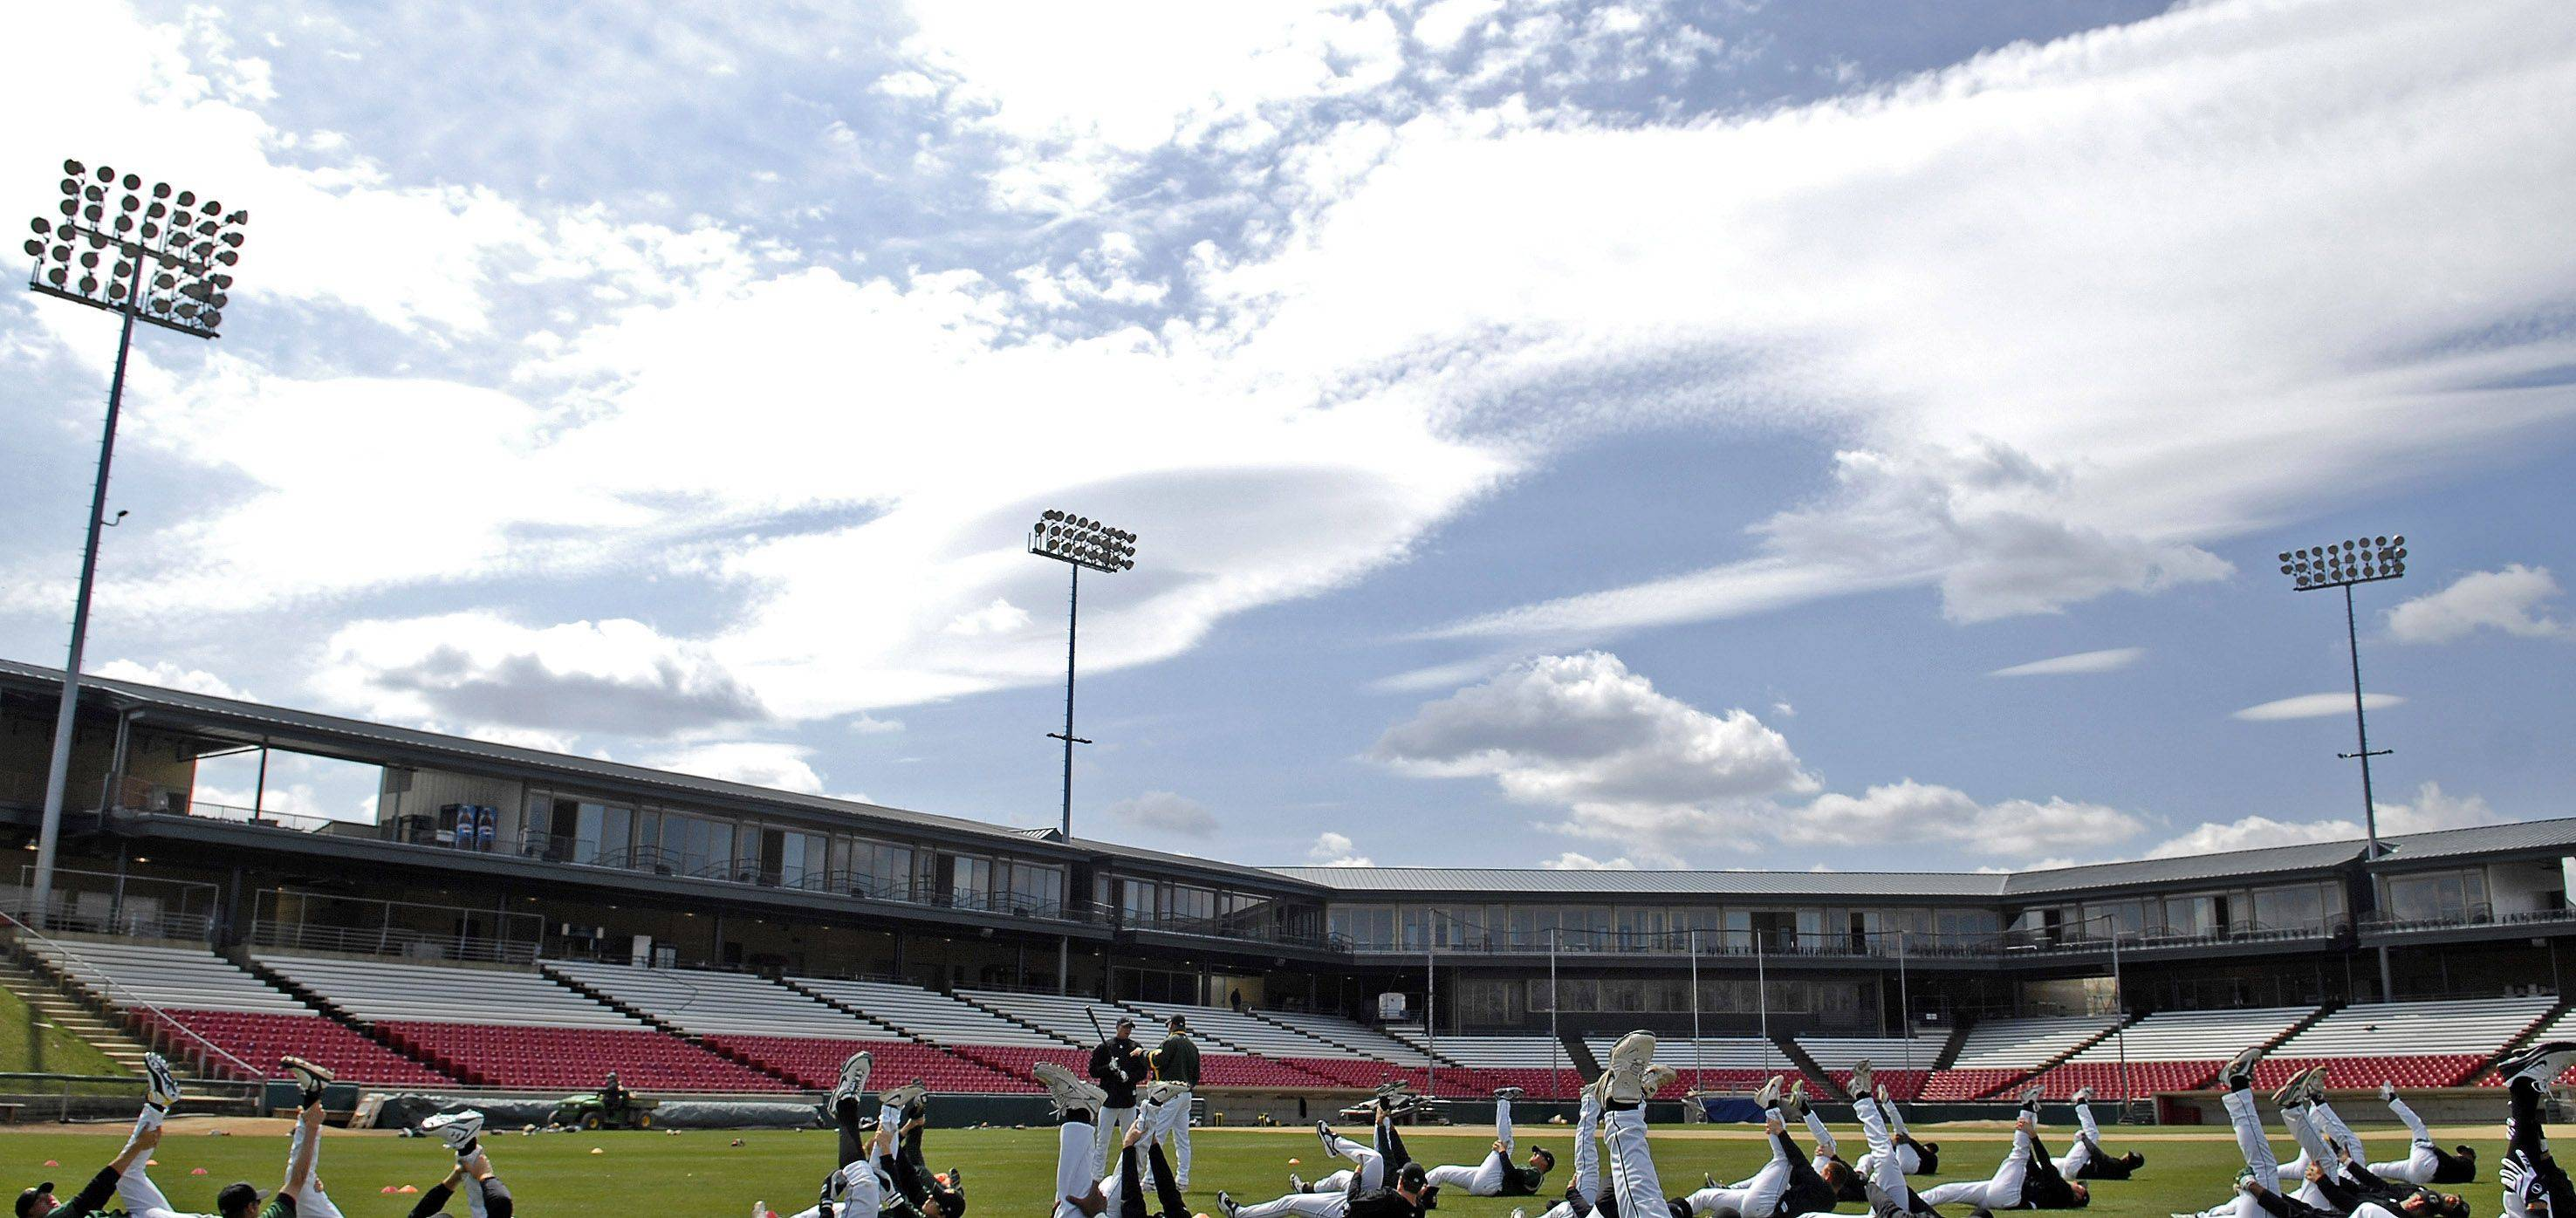 Cougars stadium to become Fifth Third Bank Ballpark